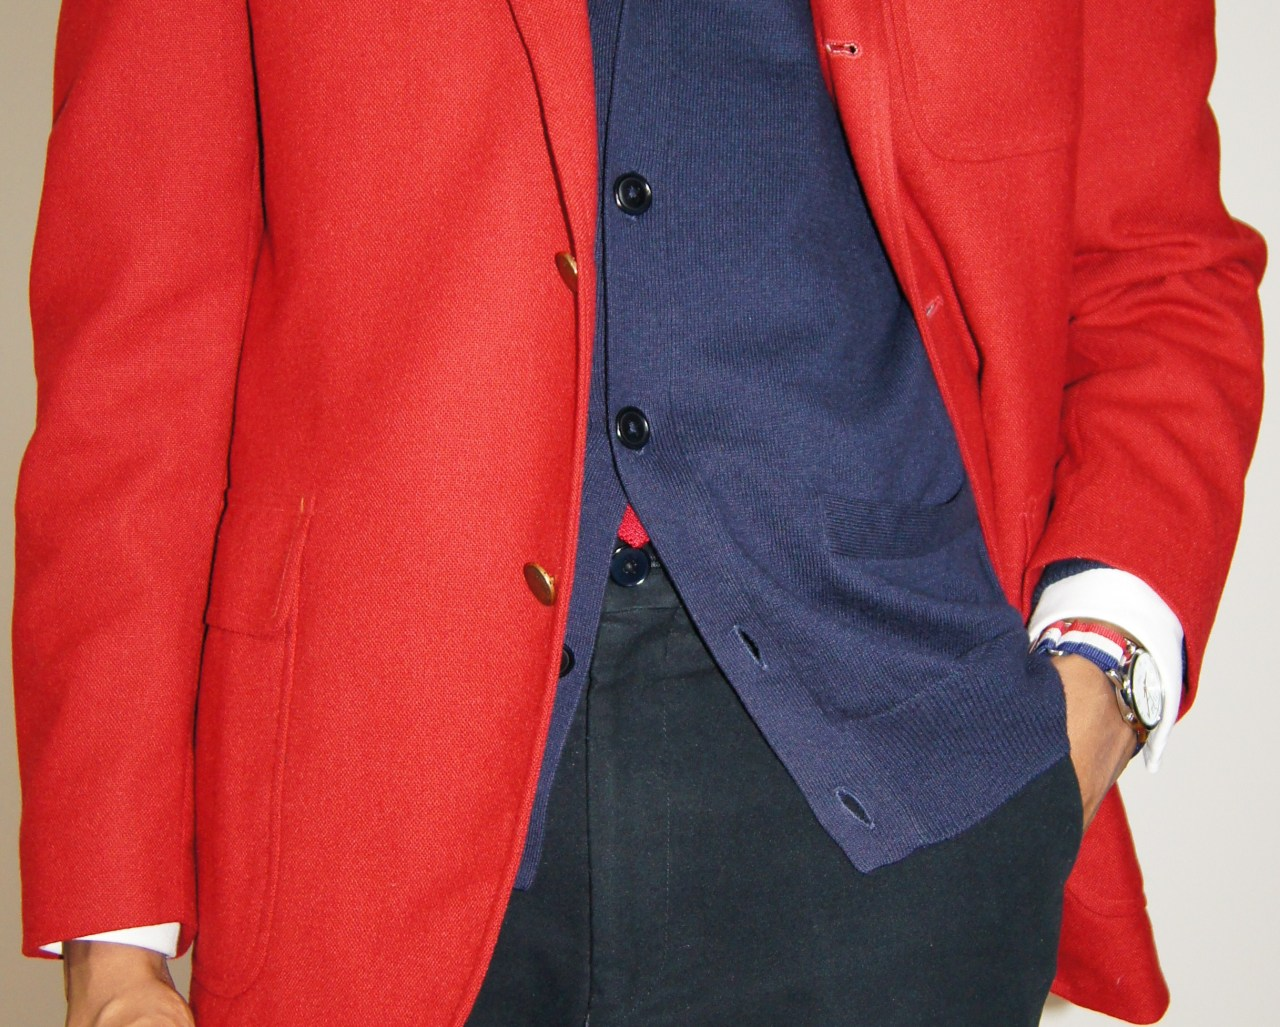 acutestyle:  02.14.13 Seeing Red Details.    Red, whites and blues in perfect harmony. Chapeau!